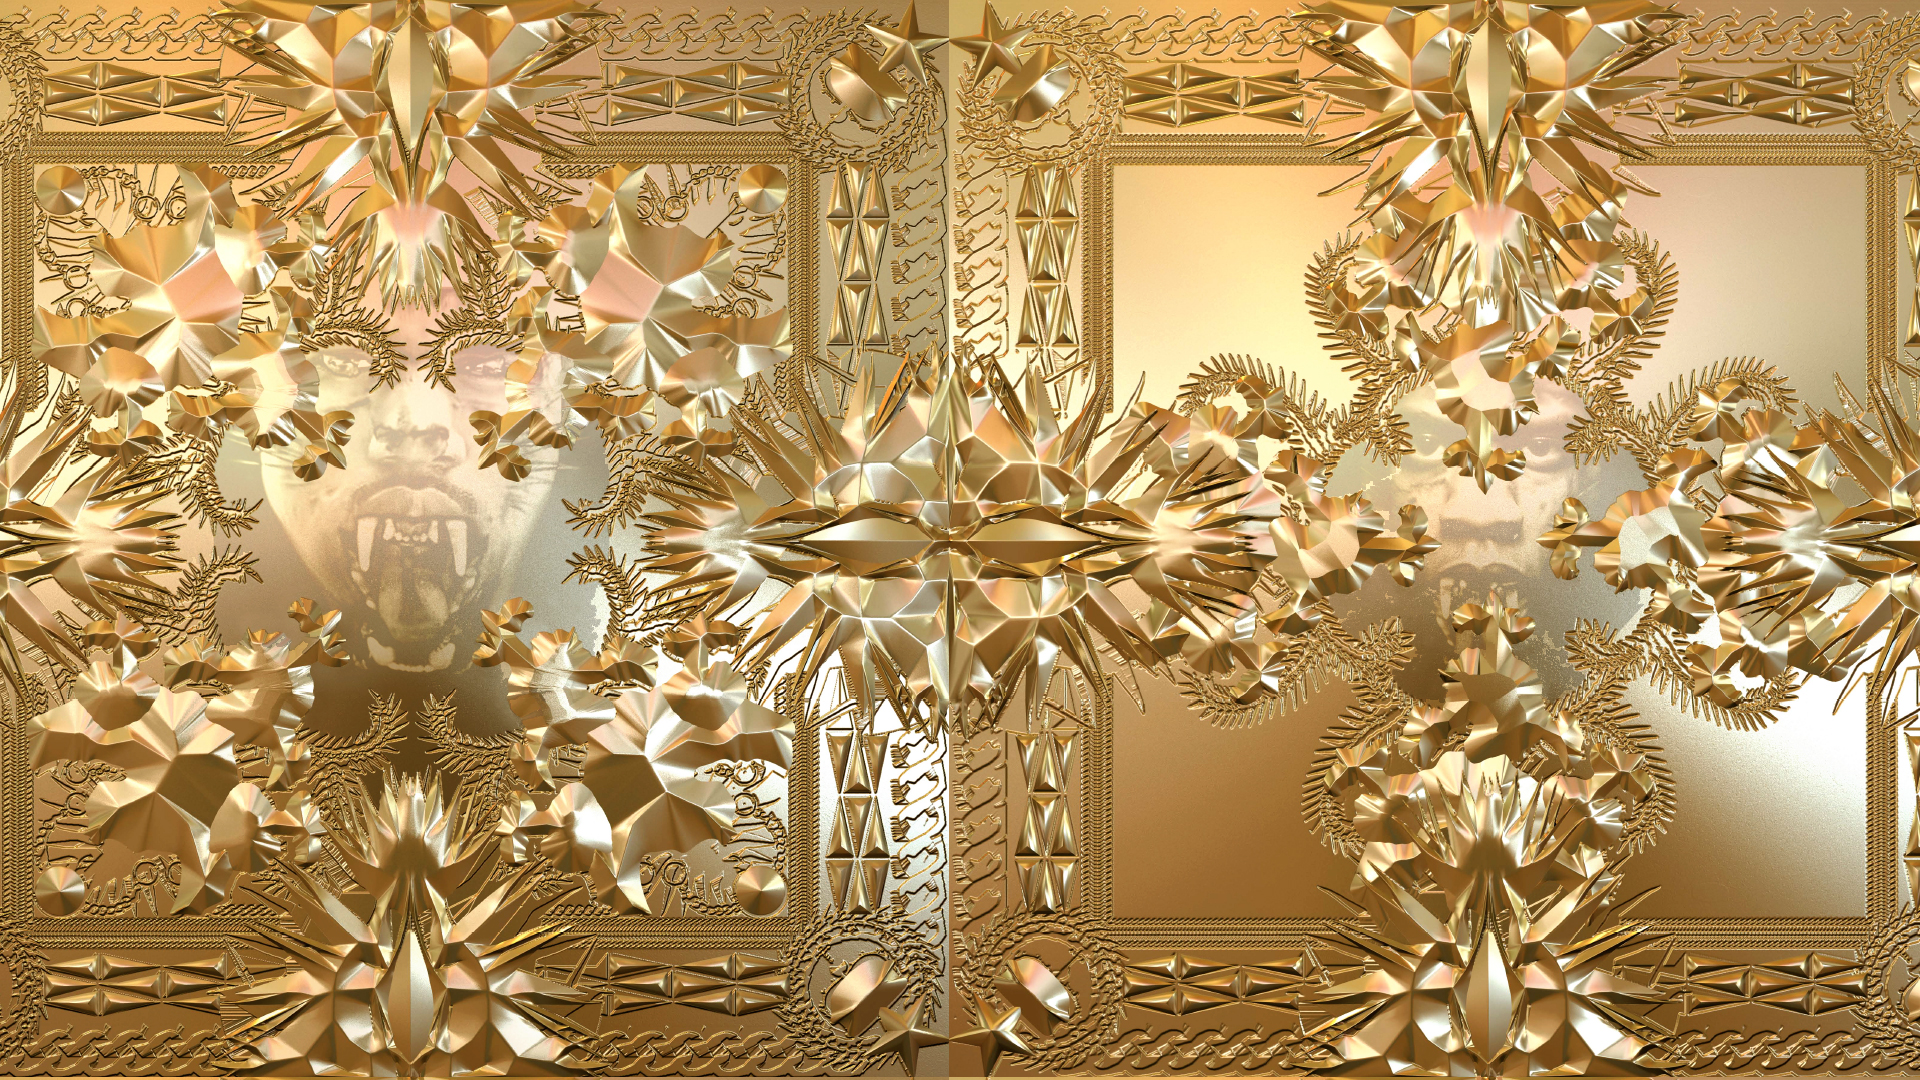 Watch-The-Throne-Wallpapers-8